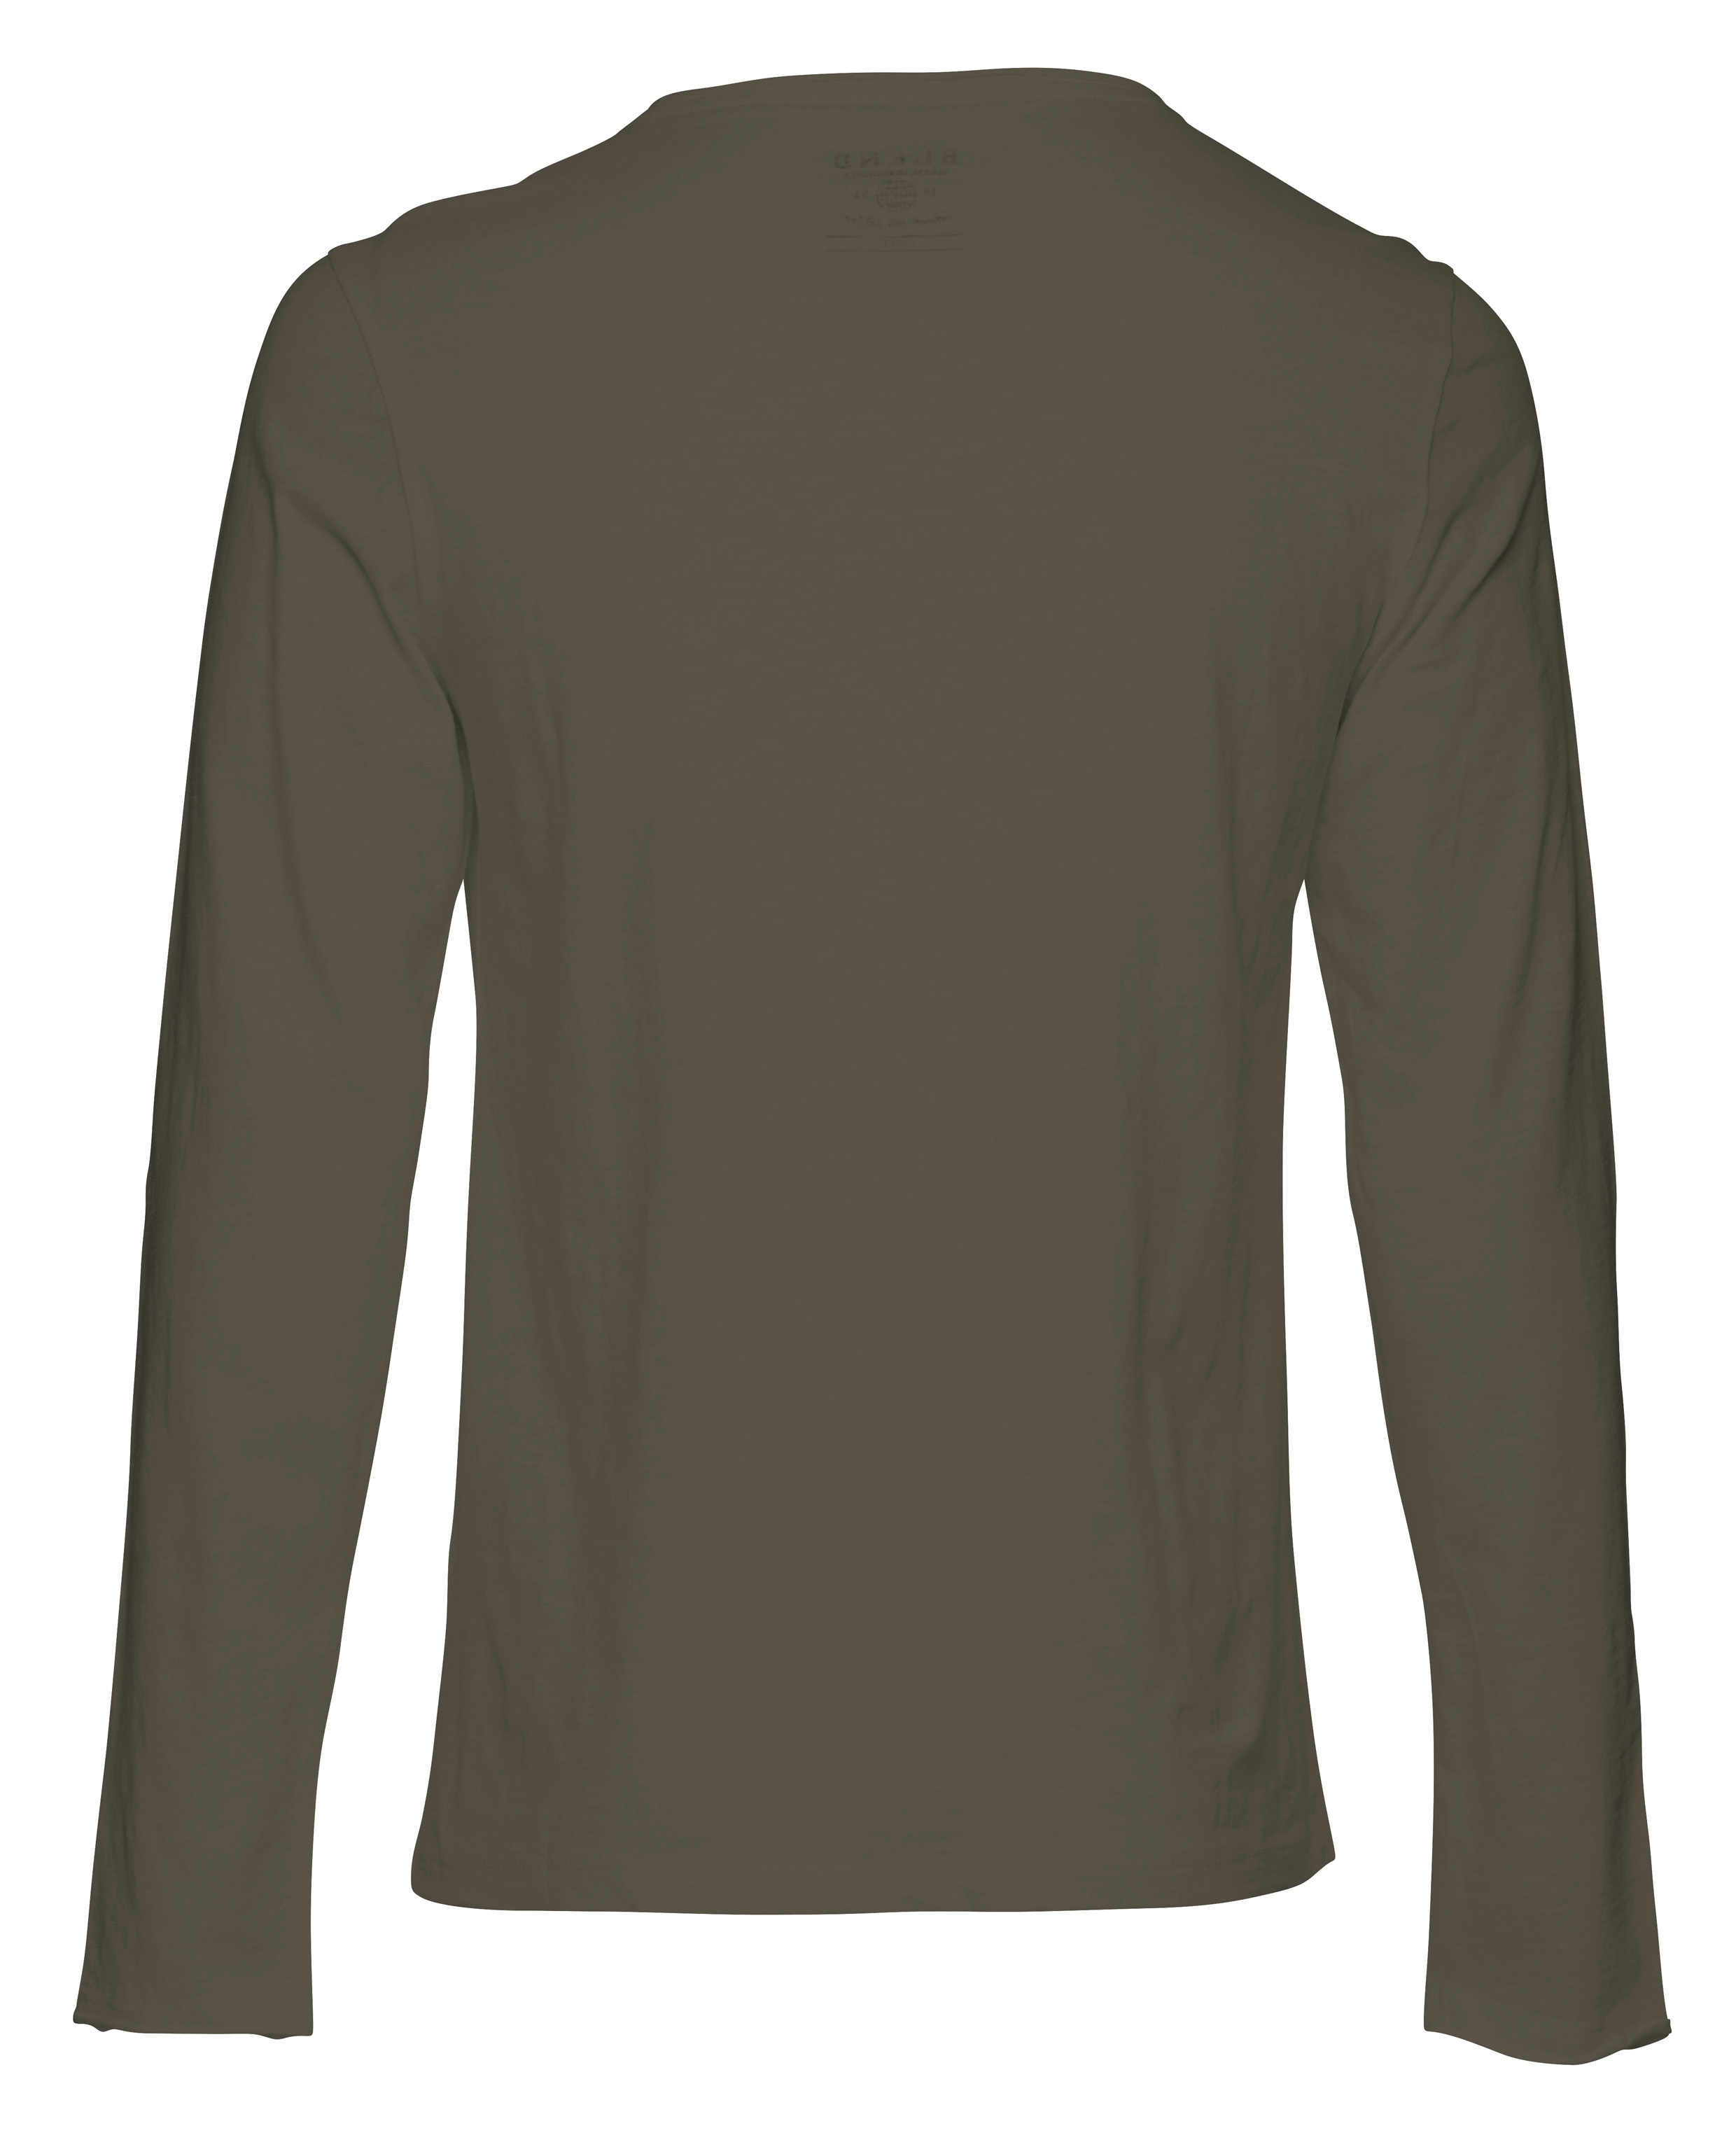 Dusty green BHNICOLAI Long sleeved T-shirt fra Blend He – Køb Dusty green BHNICOLAI Long sleeved T-shirt fra str. S-3XL her